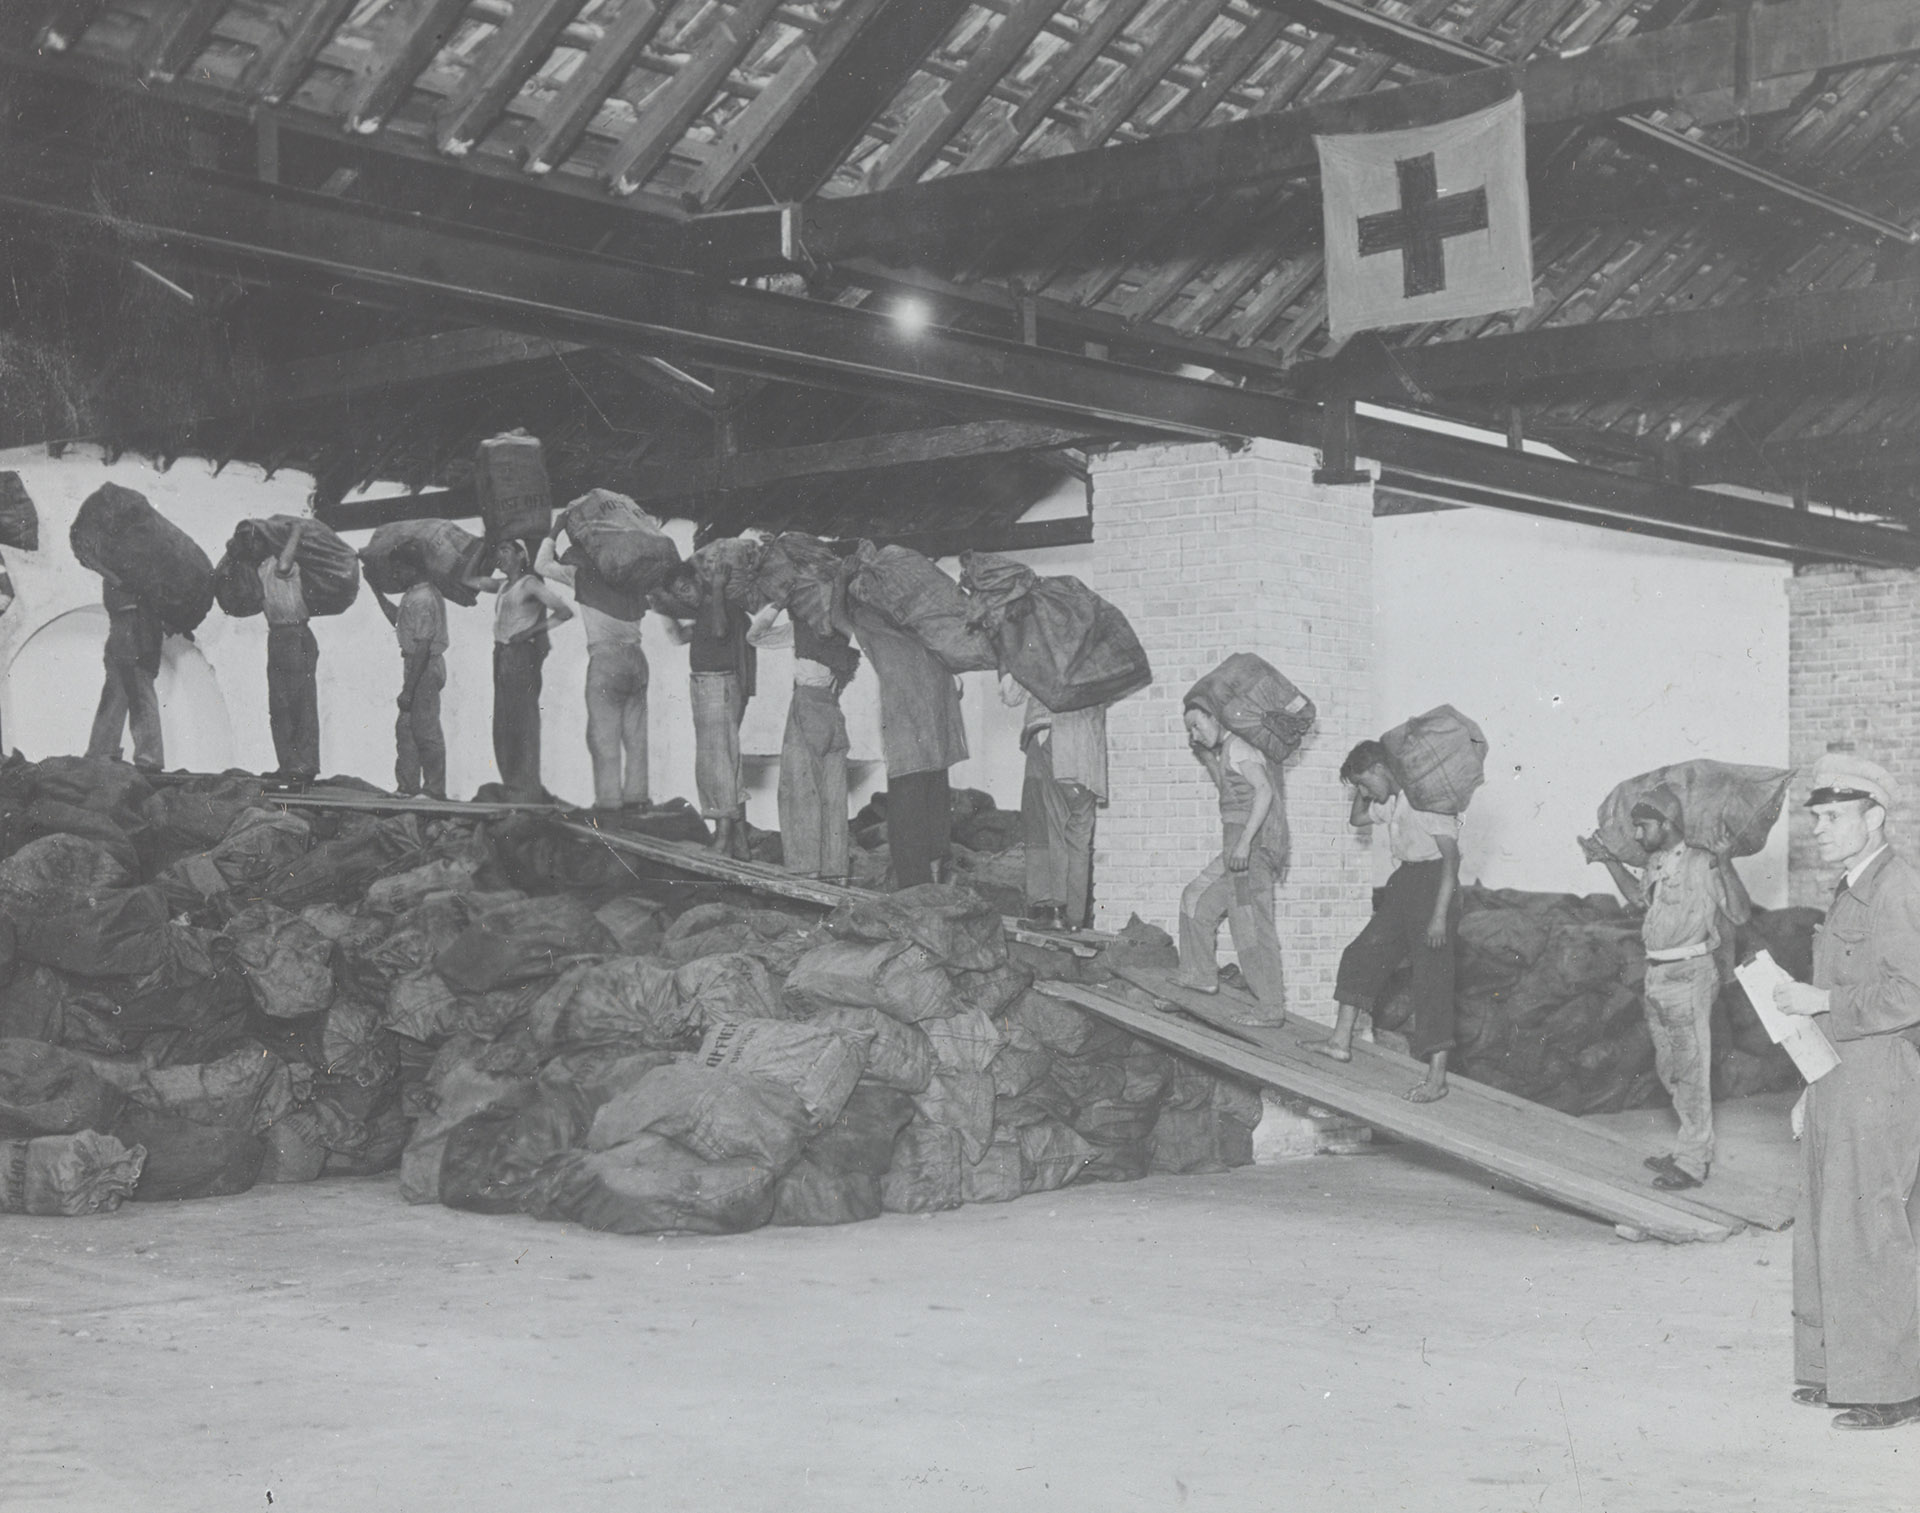 Men carrying Red Cross parcels in single file